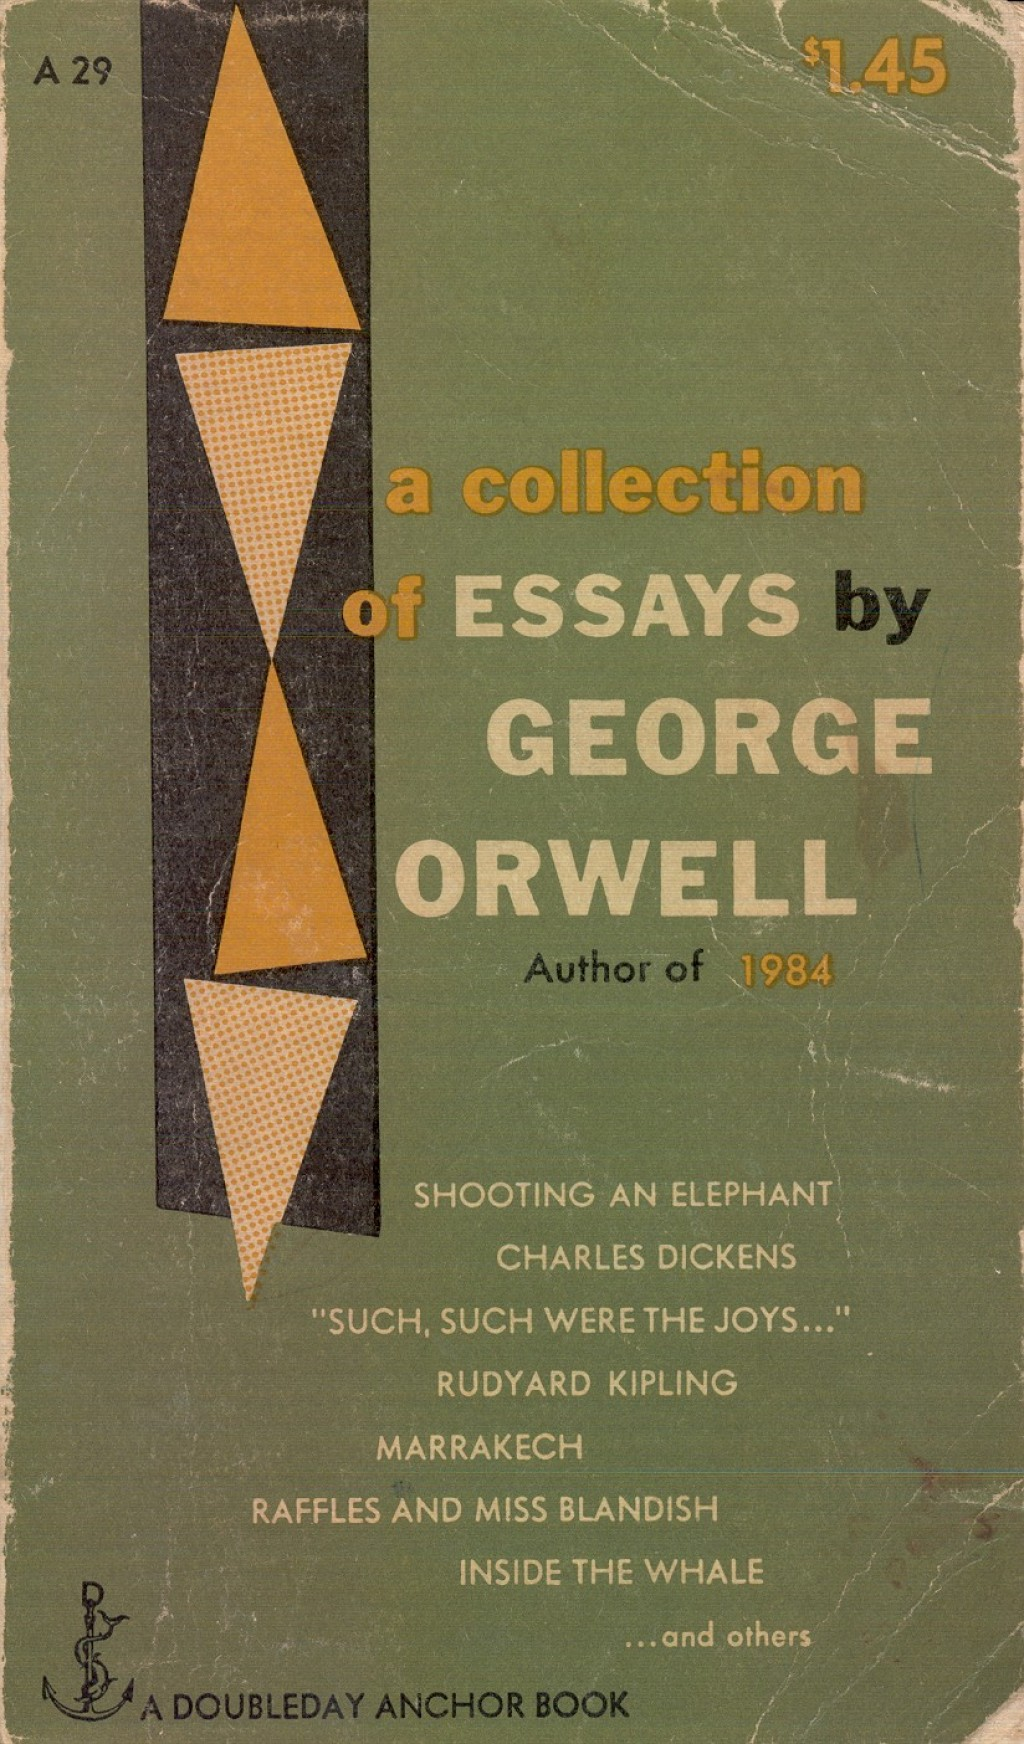 019 Essay Example Orwell George Frightening Essays 1984 Summary Collected Pdf On Writing Large